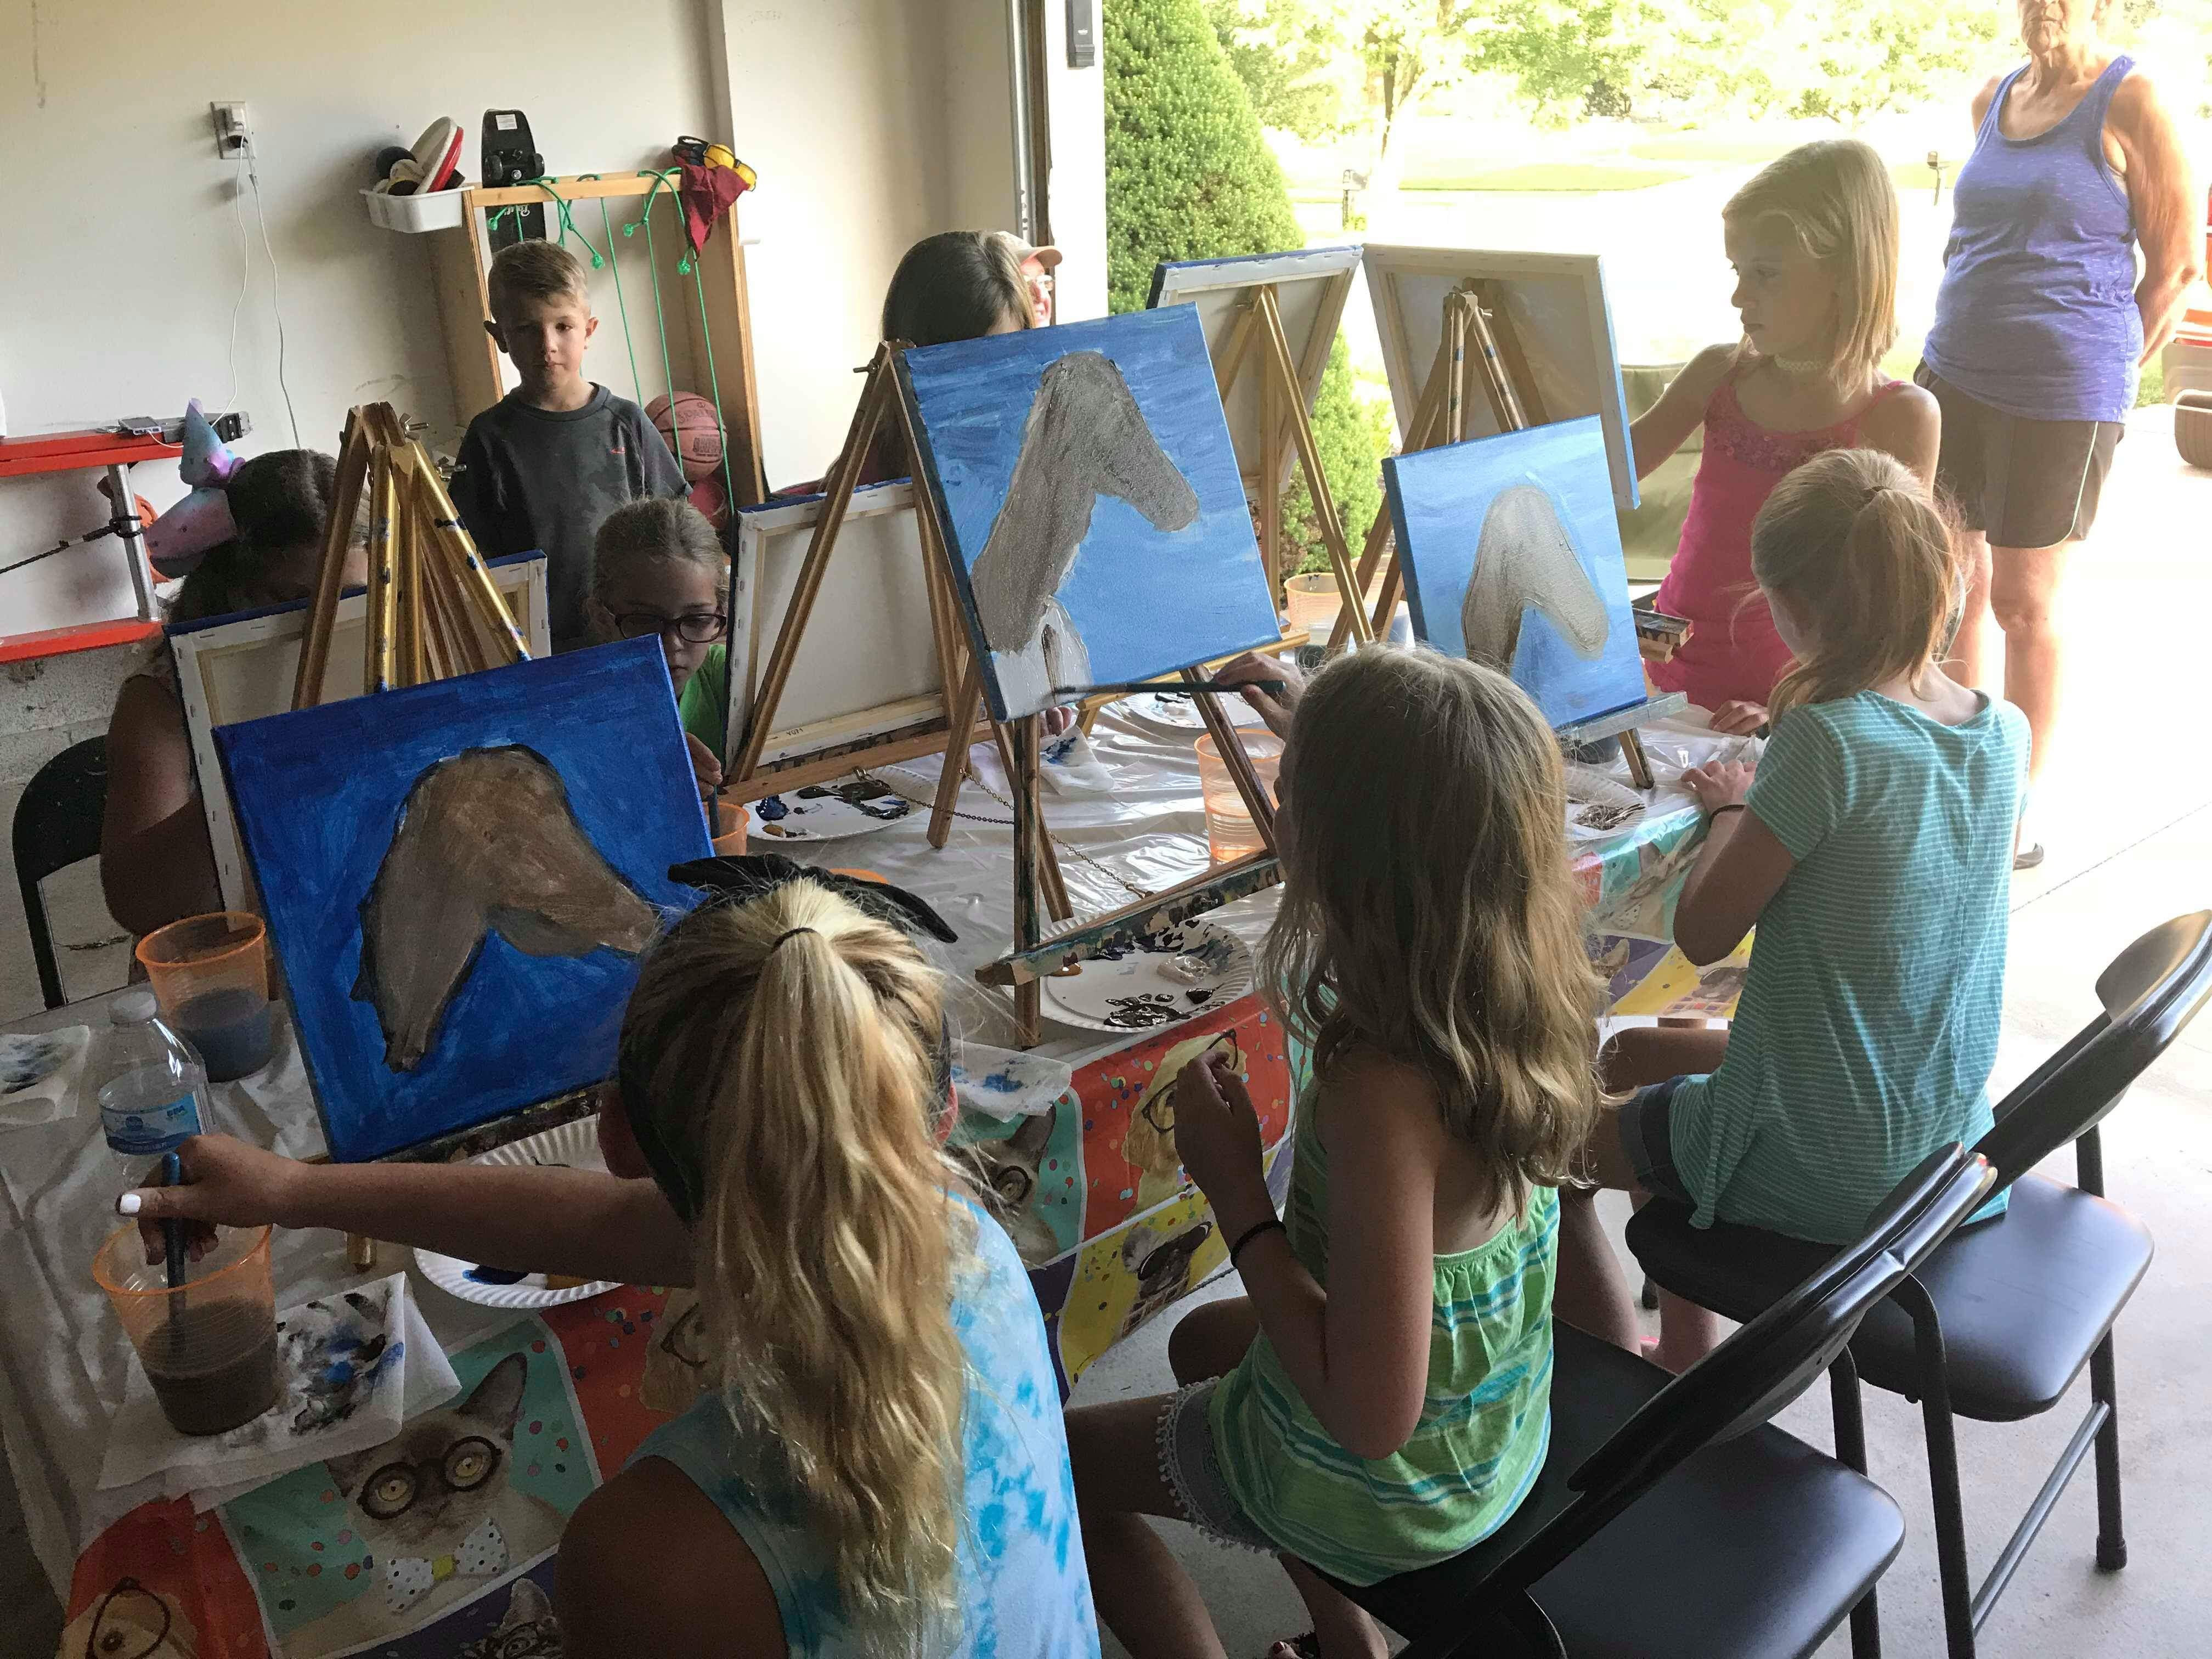 Private Party - Come to You for Painting